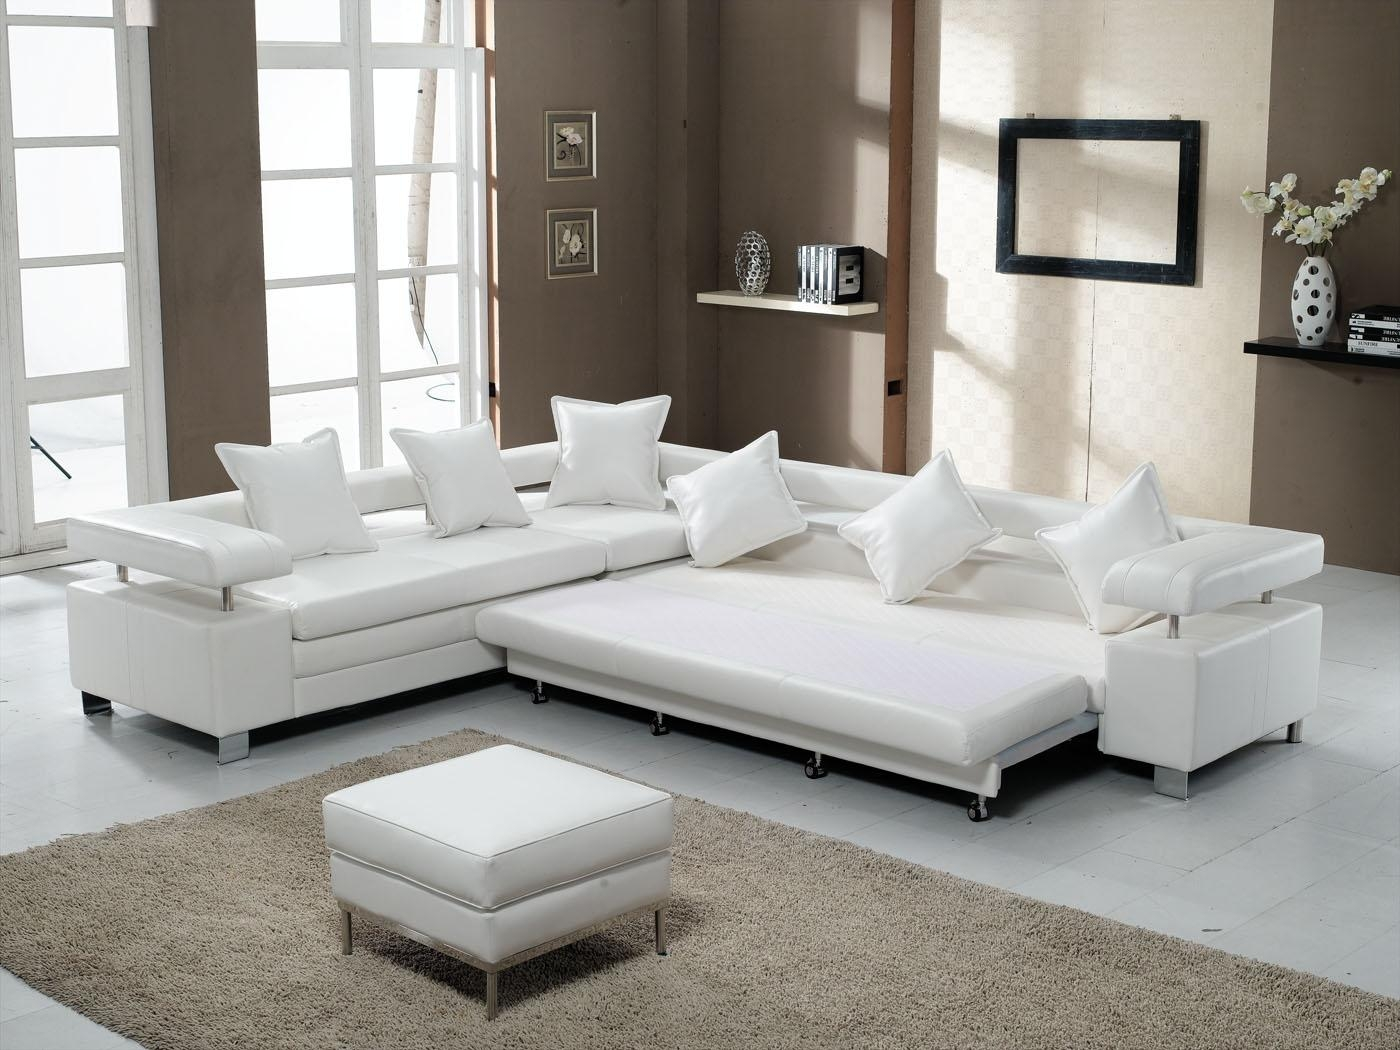 3 Piece Sectional Sleeper Sofa – Ansugallery Inside 3 Piece Sectional Sleeper Sofa (Image 1 of 15)